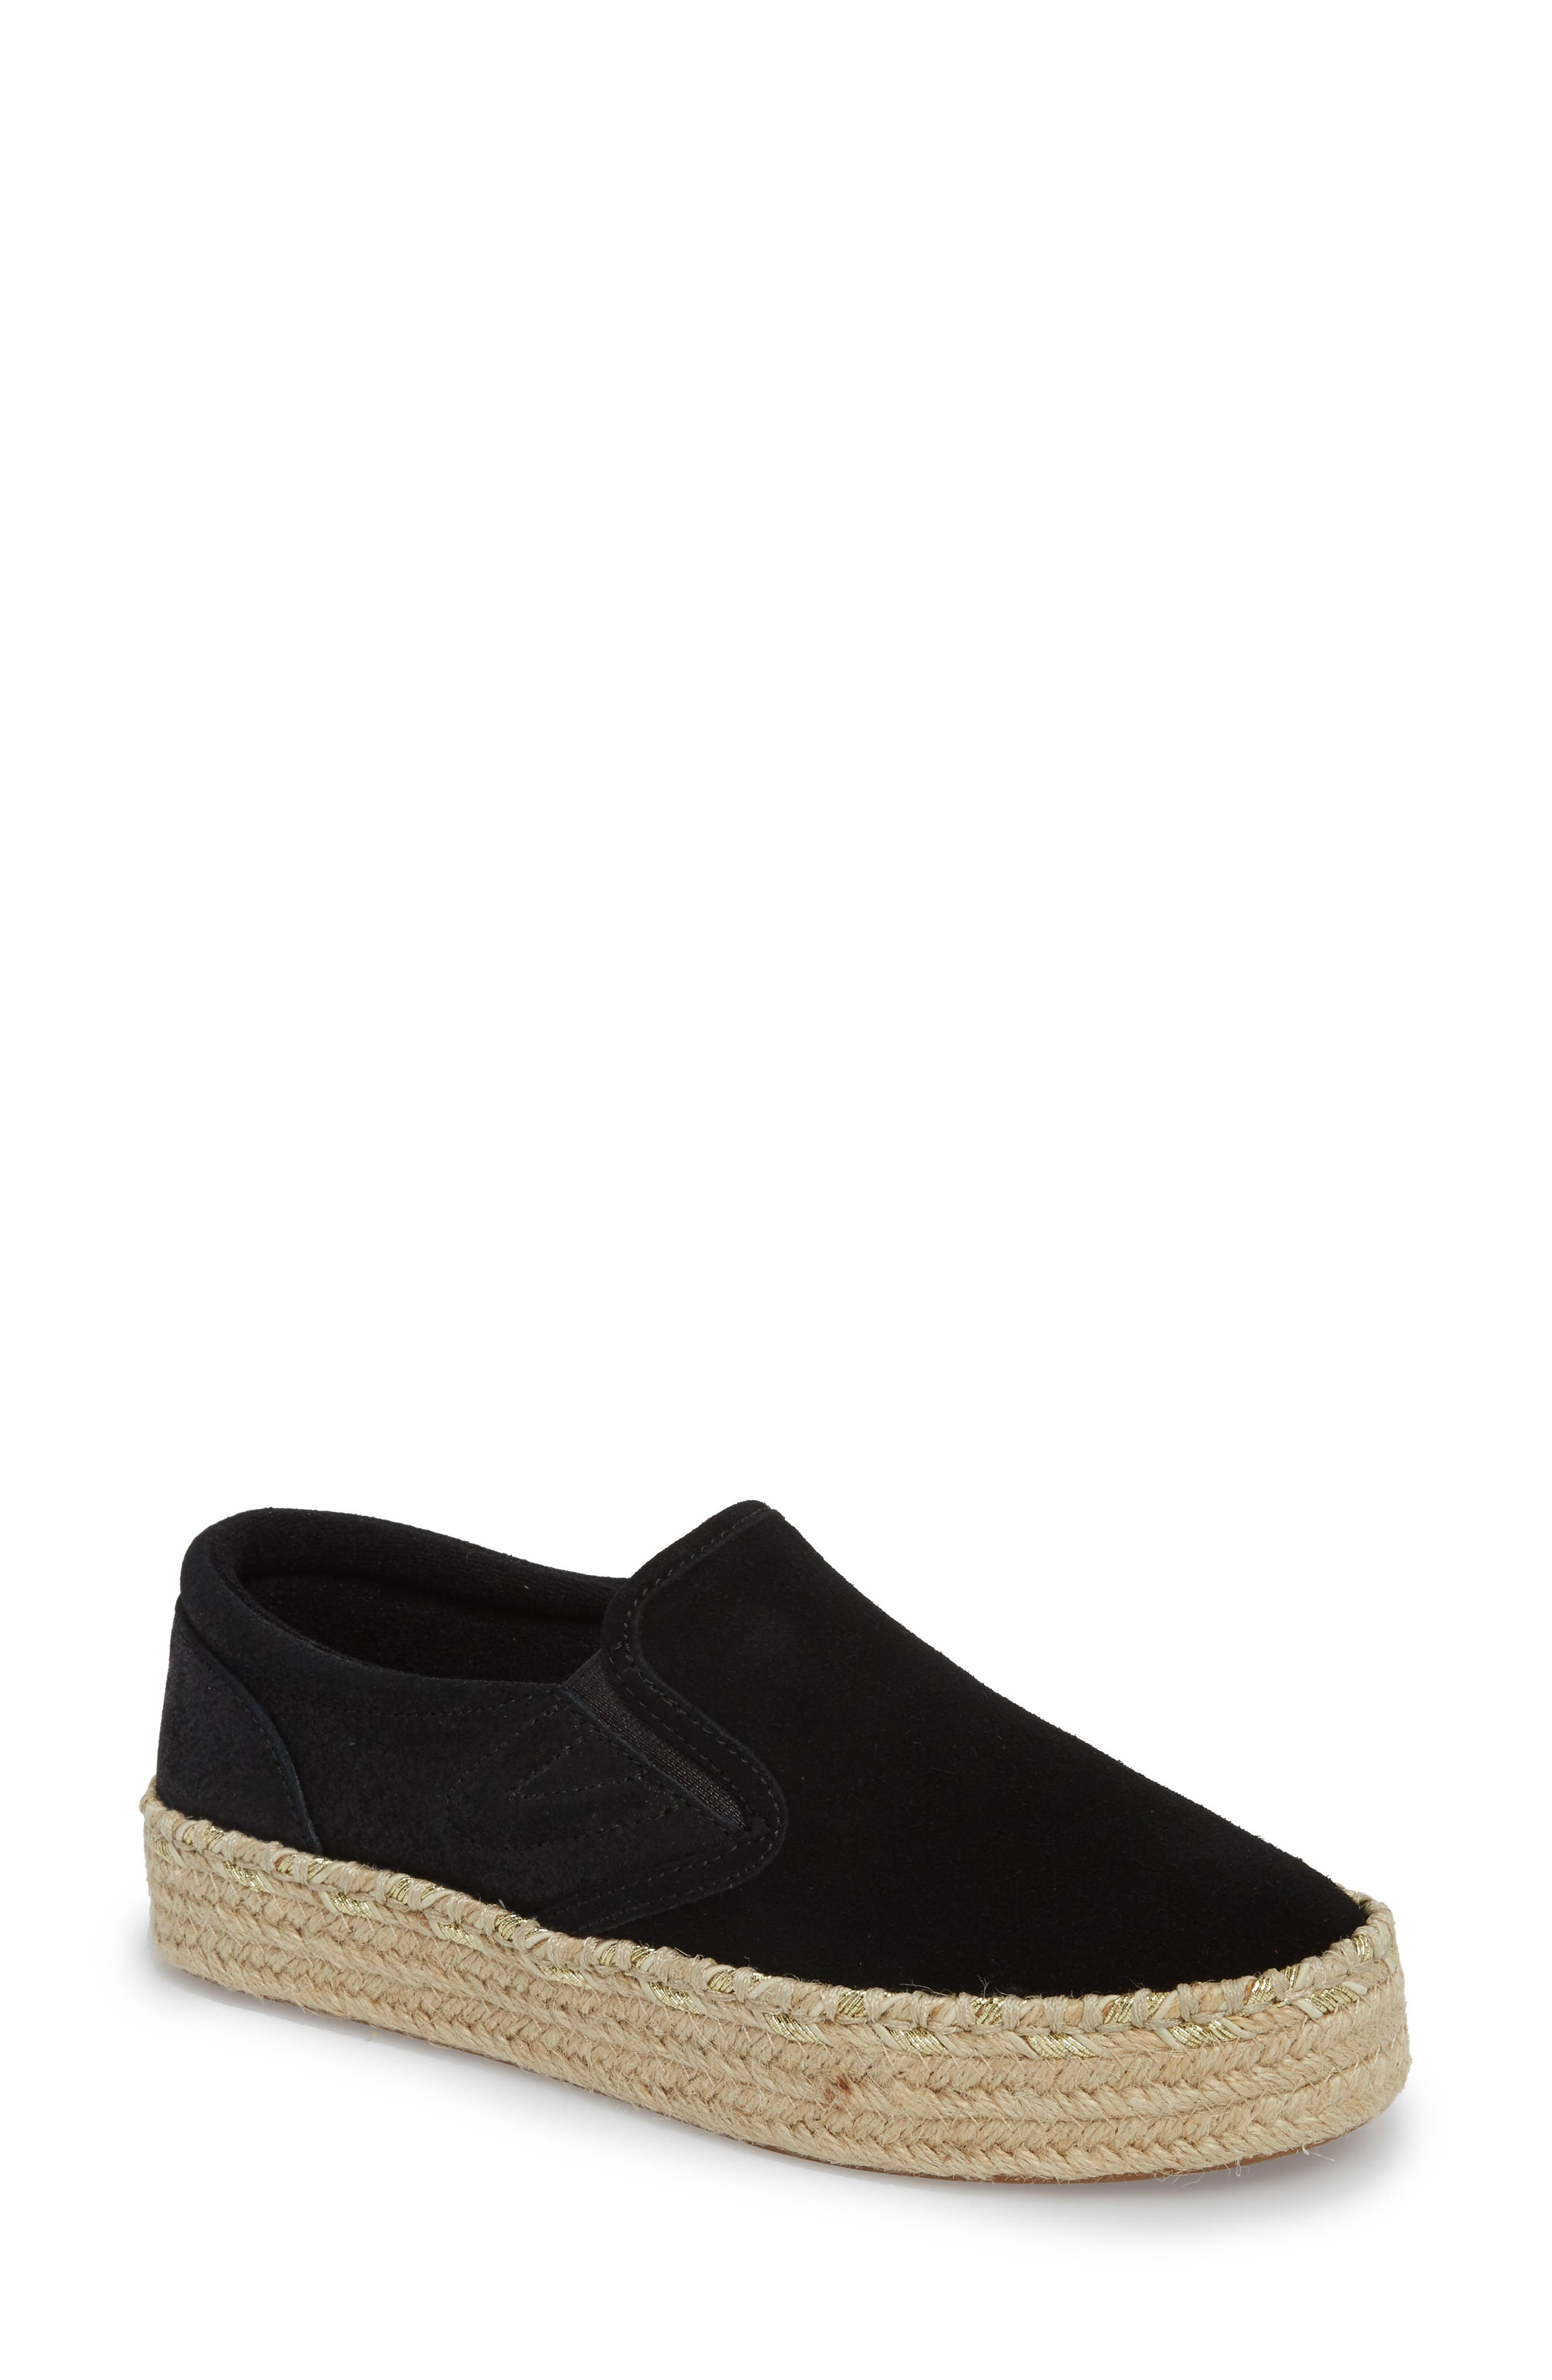 Alternate Image 1 Selected - Tretorn Espadrille Slip-On (Women)